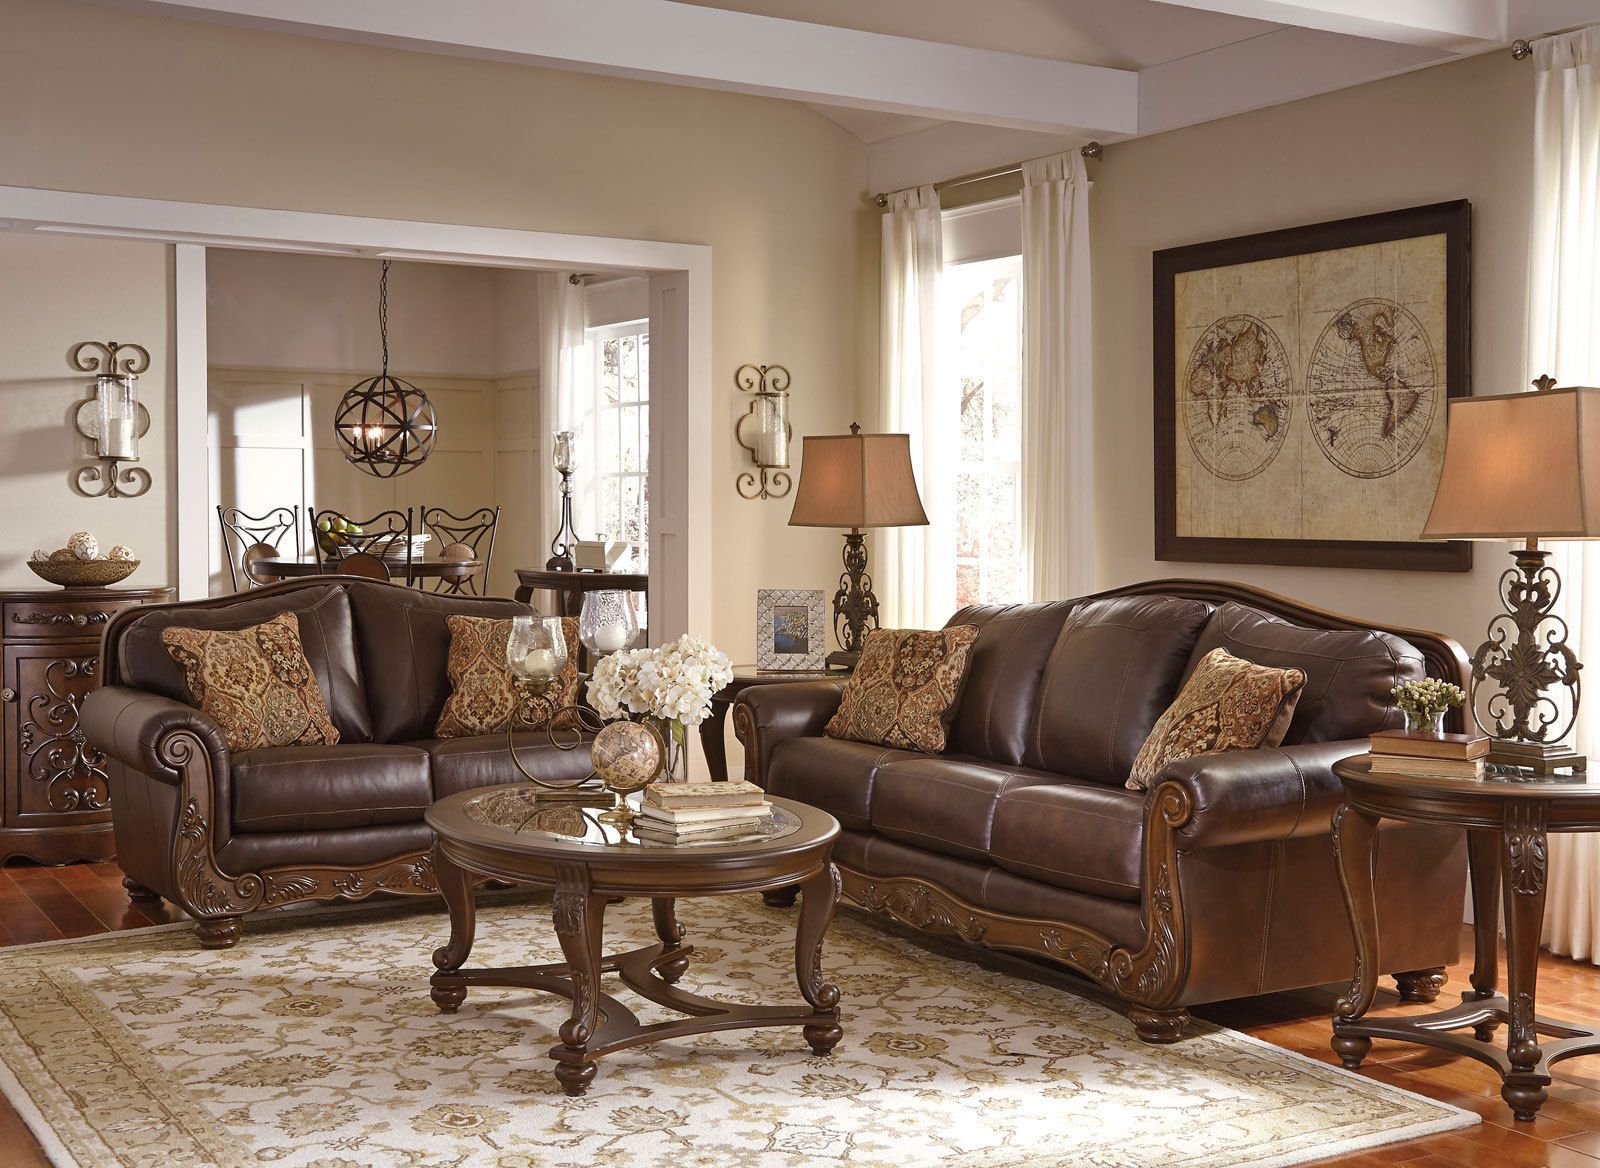 ROMANO - Traditional Brown Real Leather Sofa Couch Set Living Room